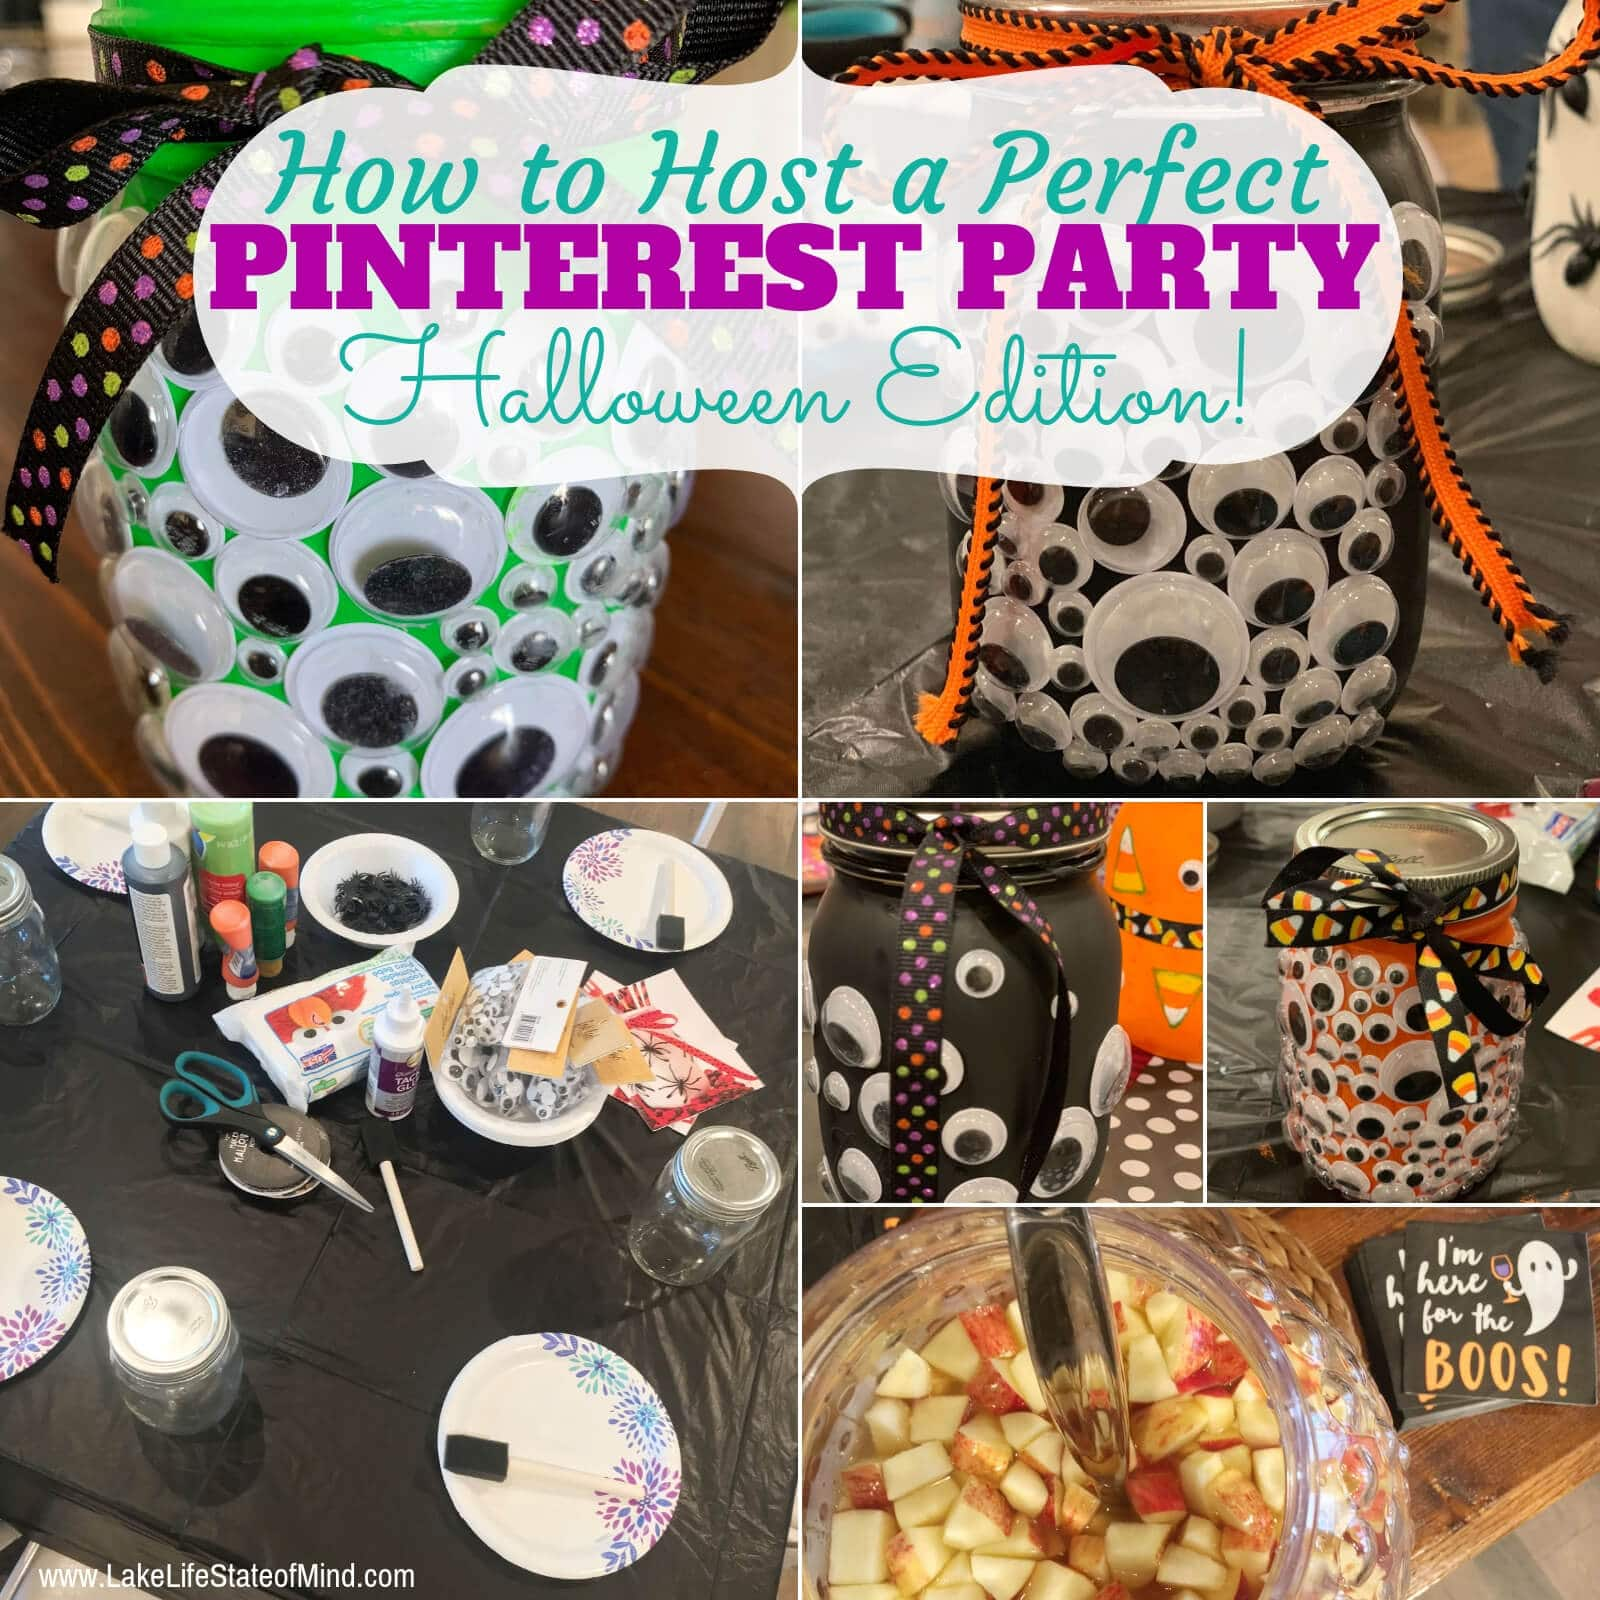 How to Host the Perfect Pinterest Party: Halloween Edition